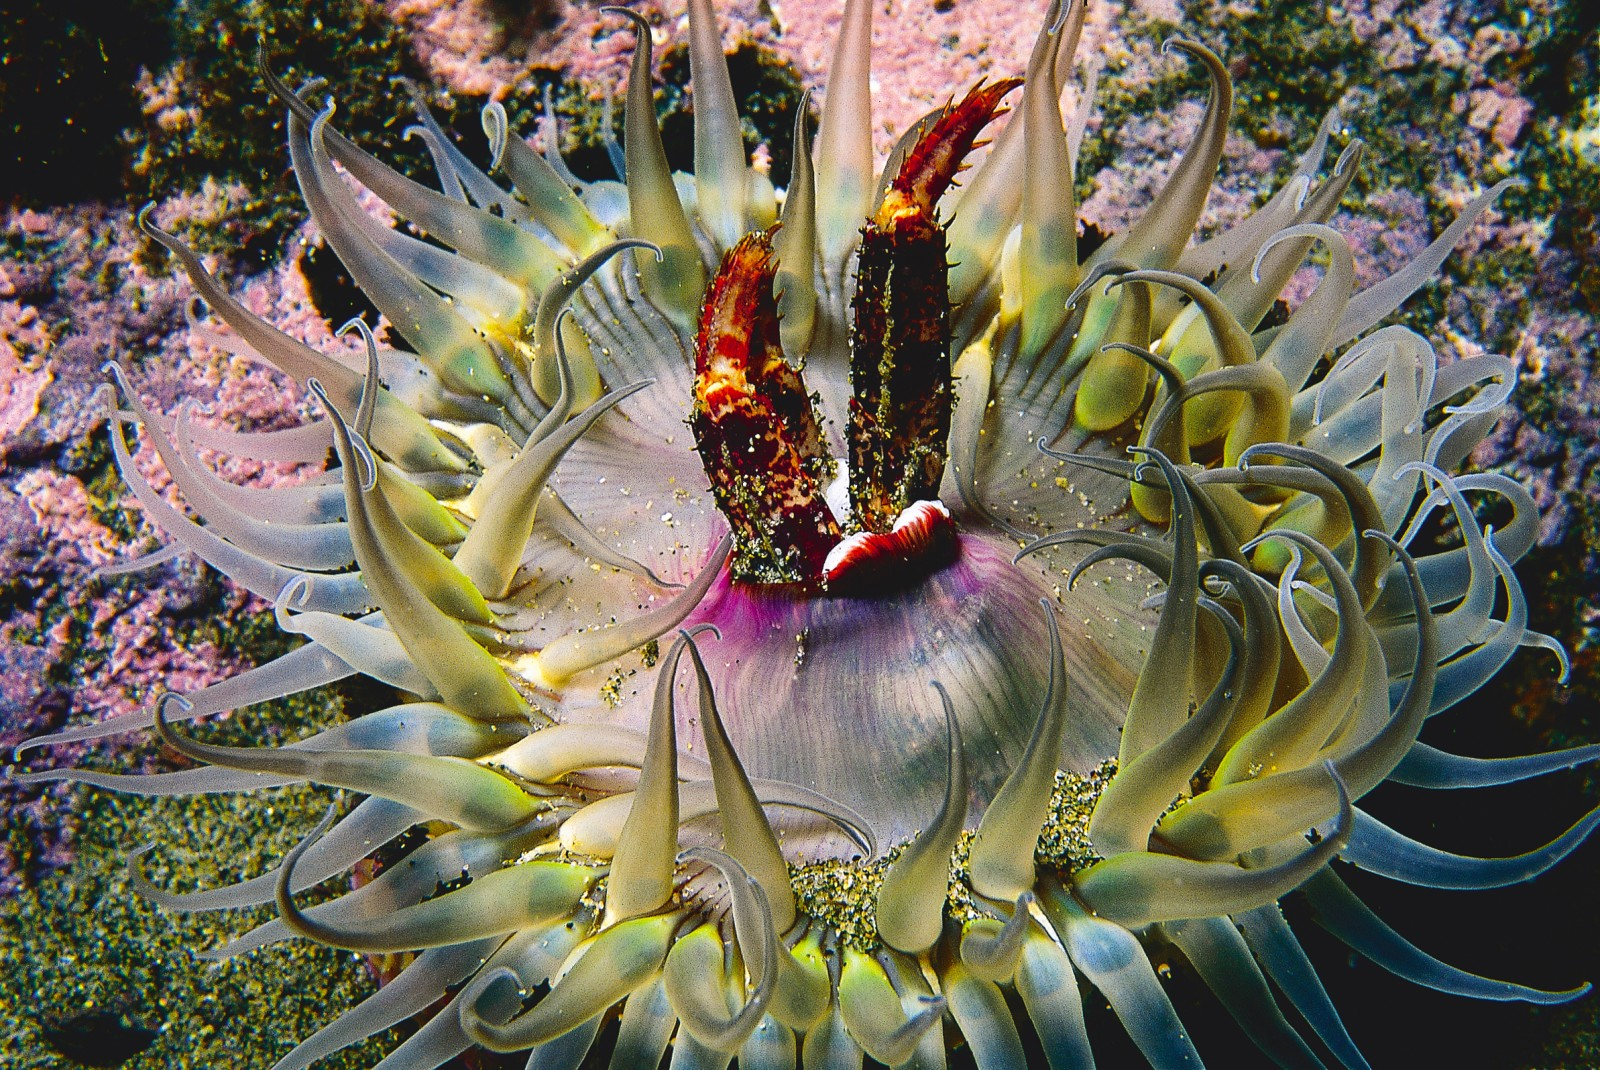 Crabs are not customary prey for sea anemones, so it is likely that these legs had parted company with their owner before falling into the arms of the anemone.